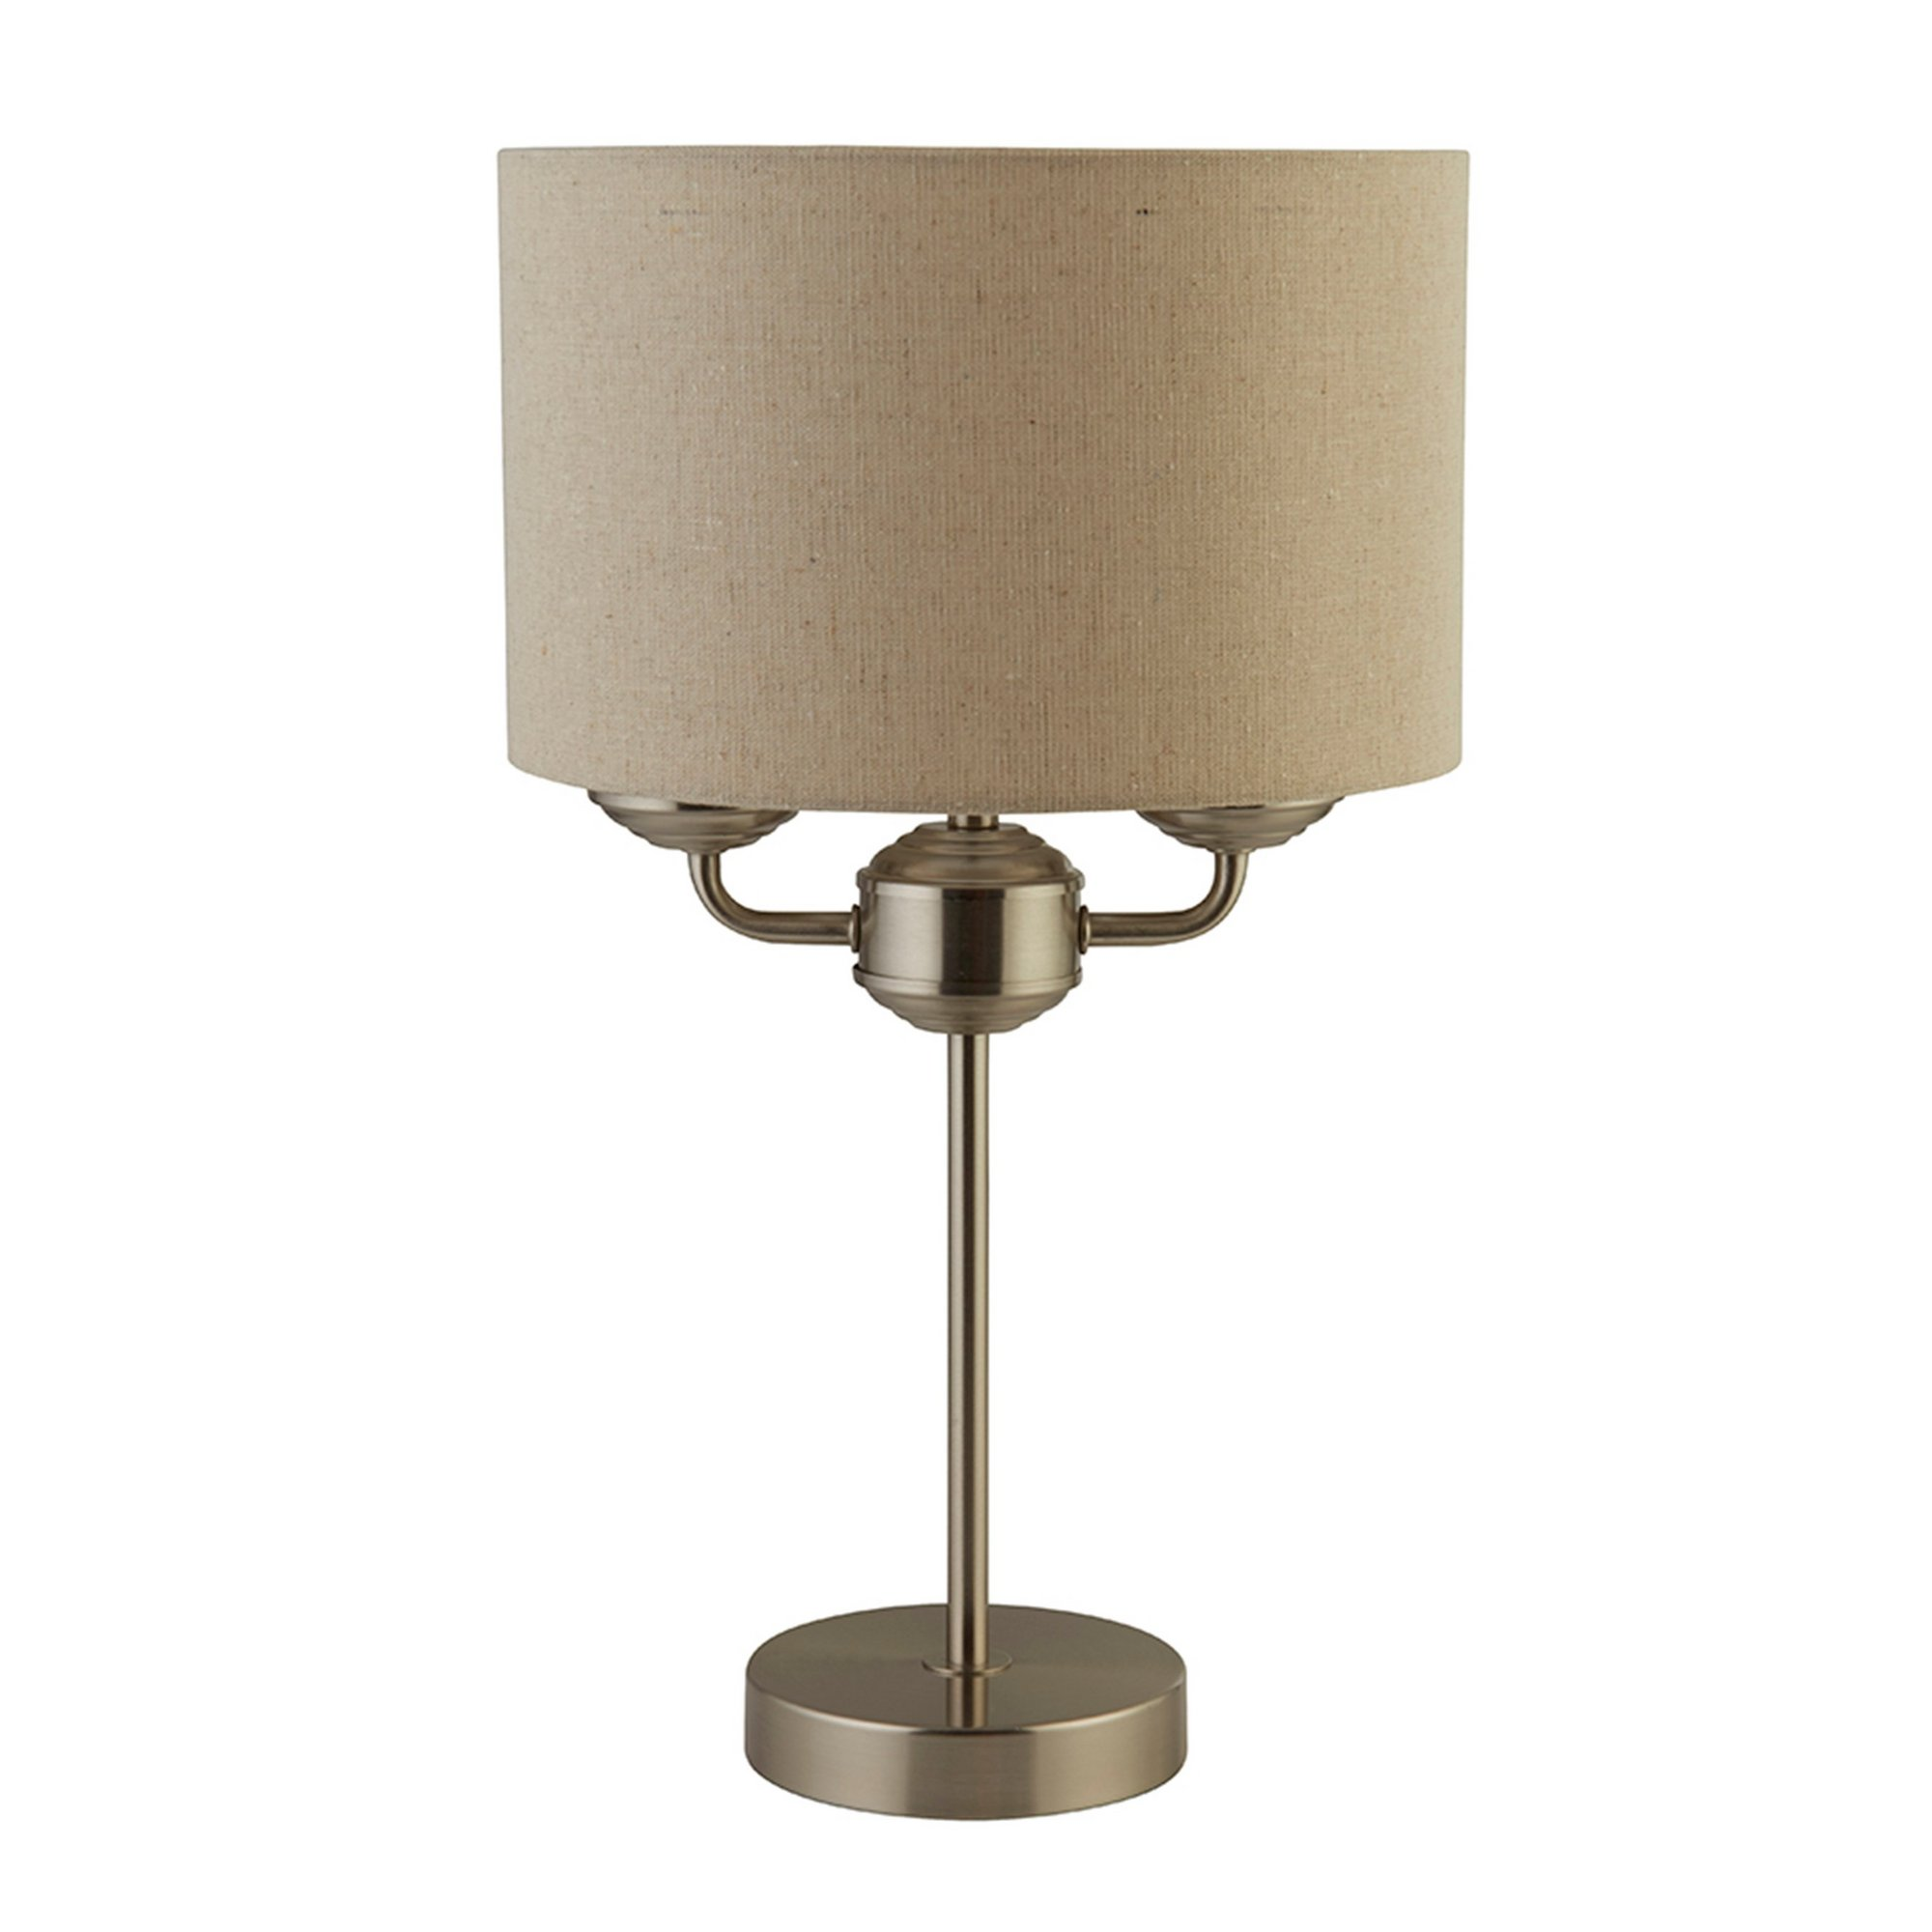 Image of 2 Light Table Lamp with Linen Shade